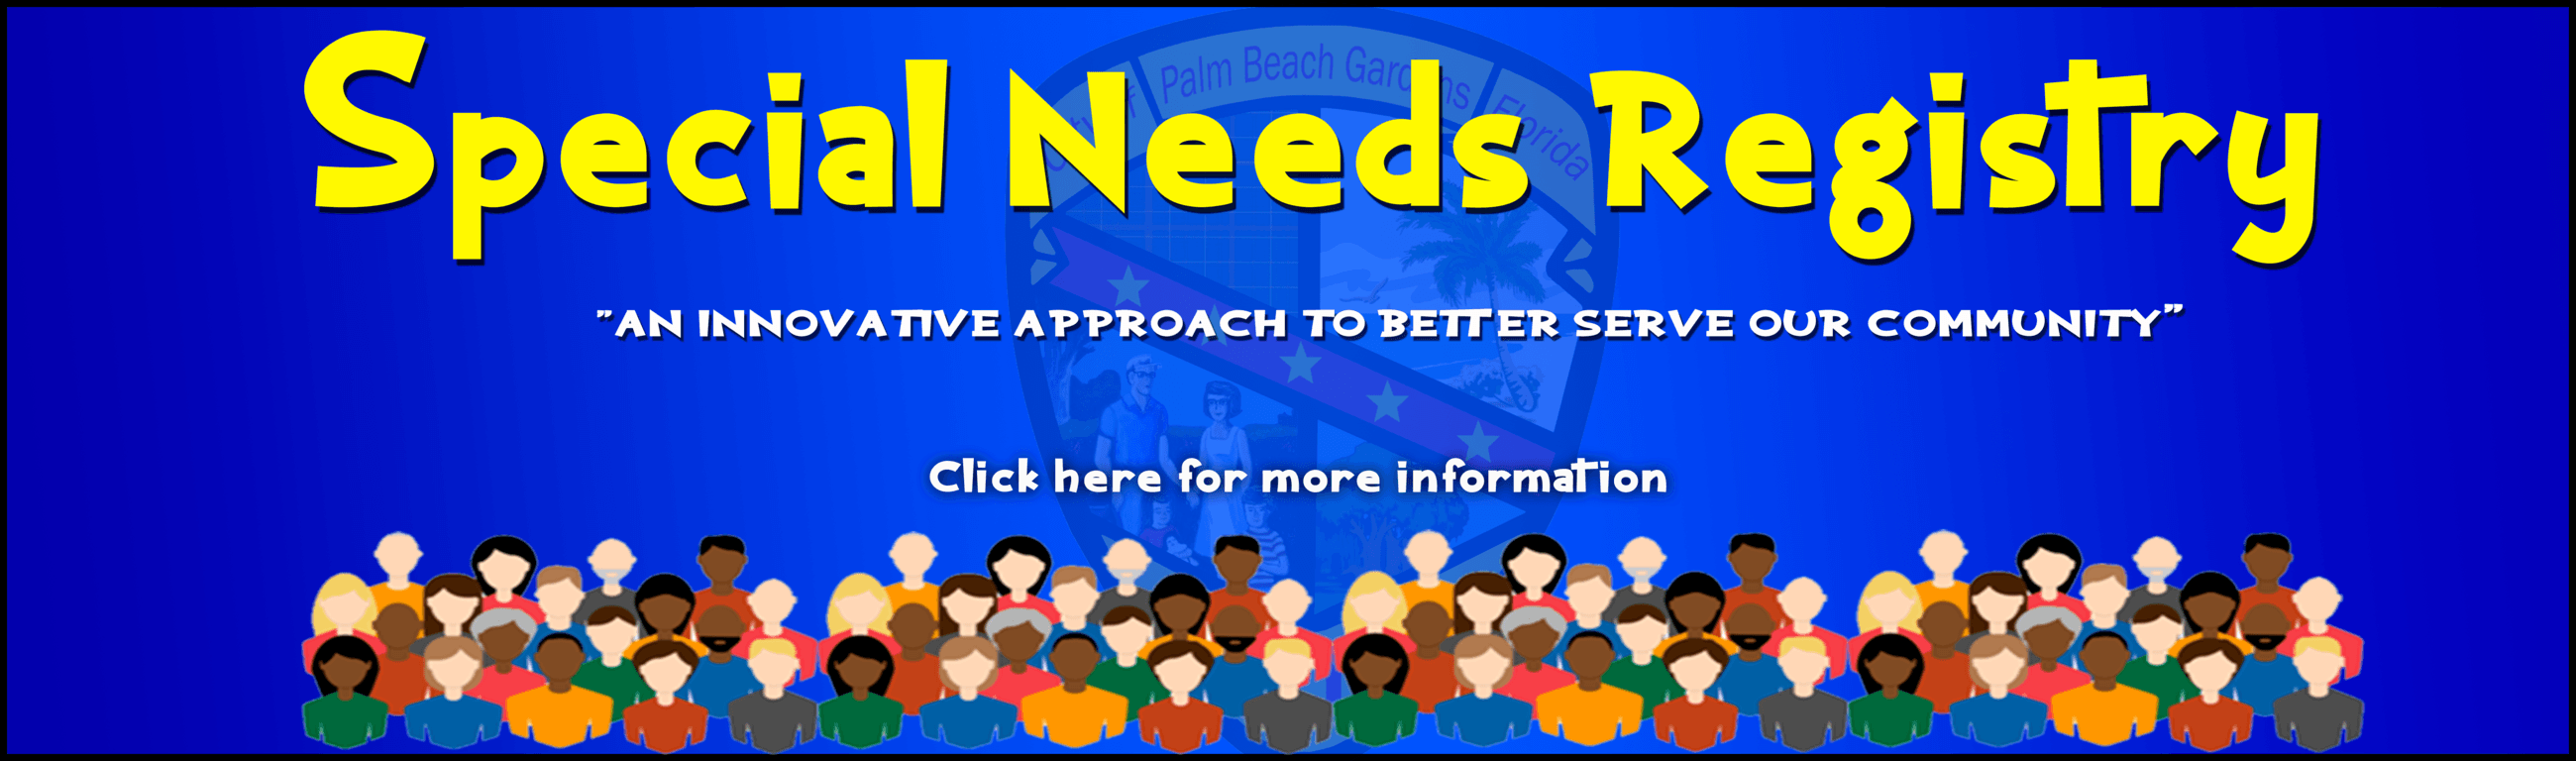 Special Needs Registry. Image is link.